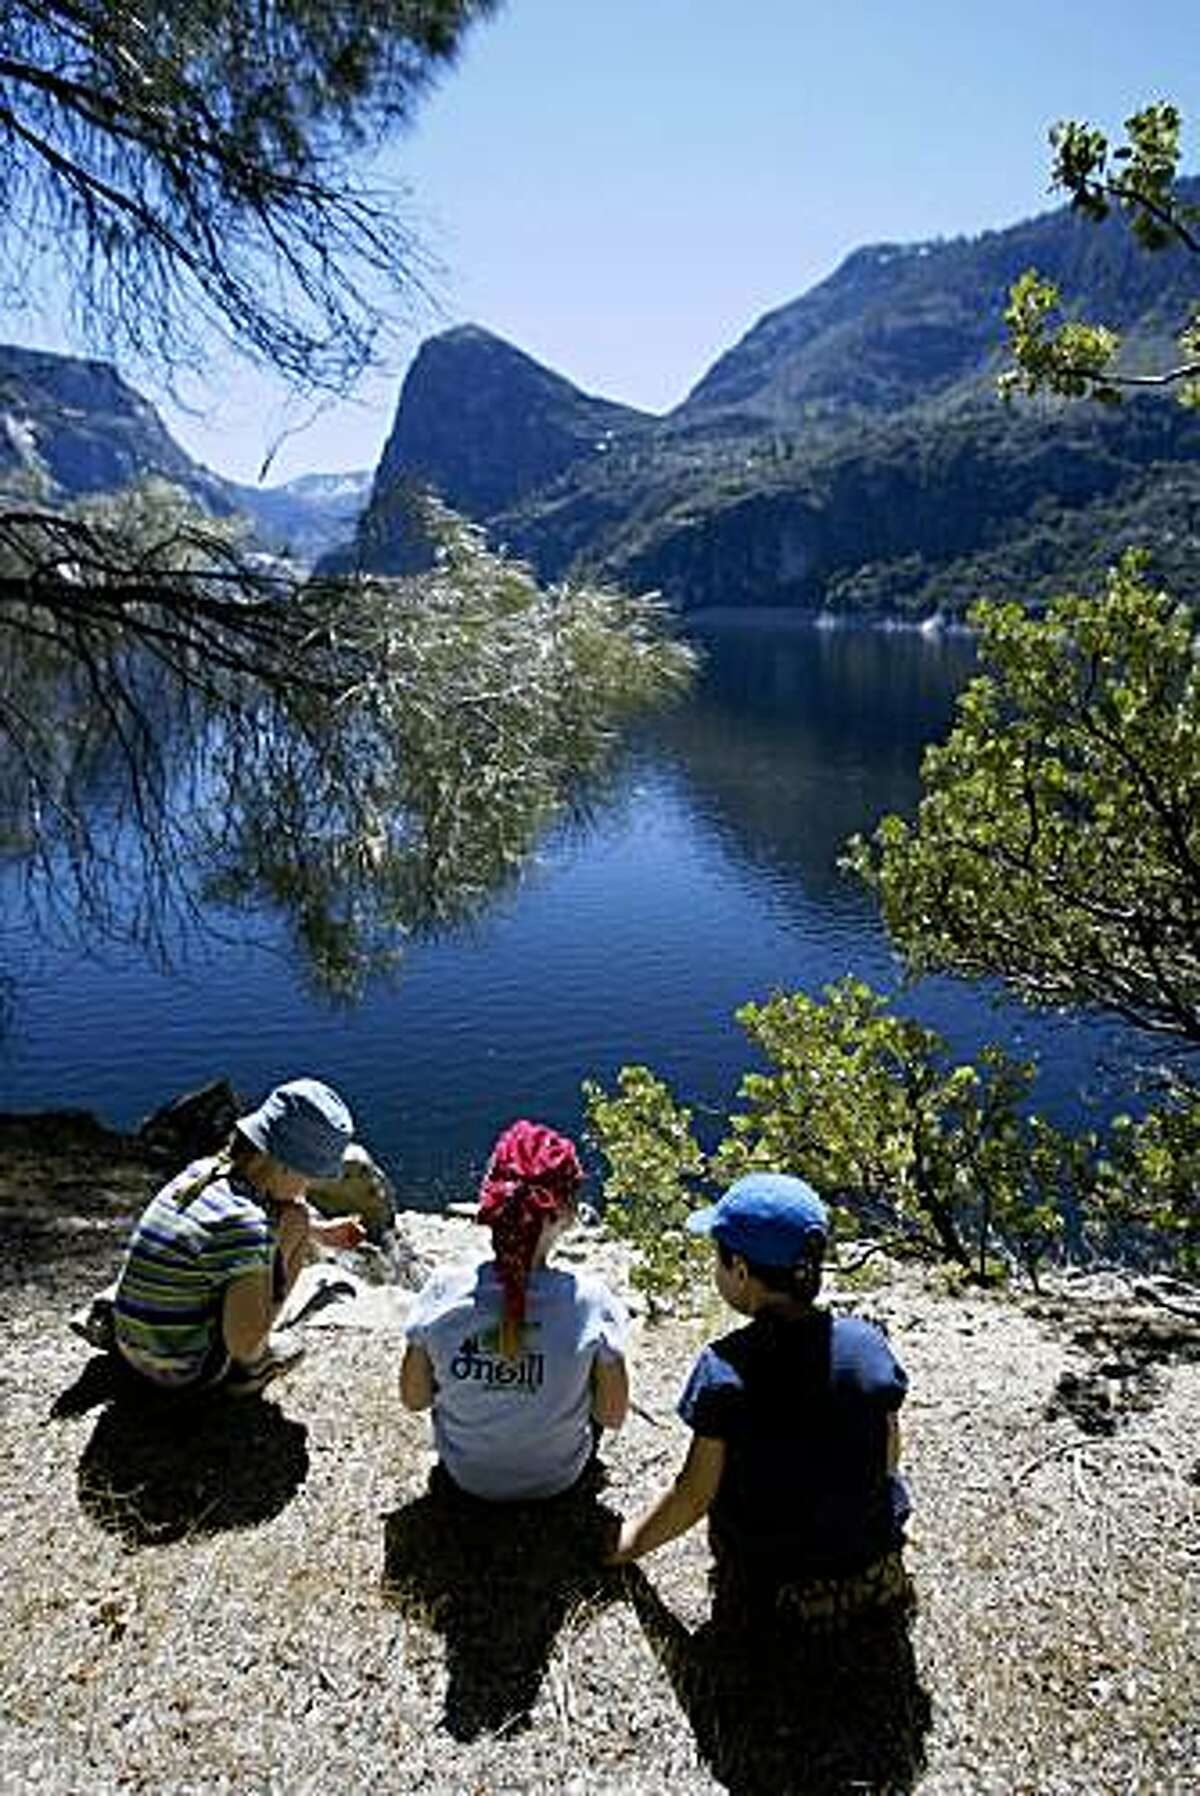 Left to right, Quincy Stivers, 7, Maddie Marchand, 7, and Aiden Stivers, 5, take a break from hiking while on a tour of the Hetch Hetchy area with their parents and a group folks interested in Restoring Hetch Hetchy.